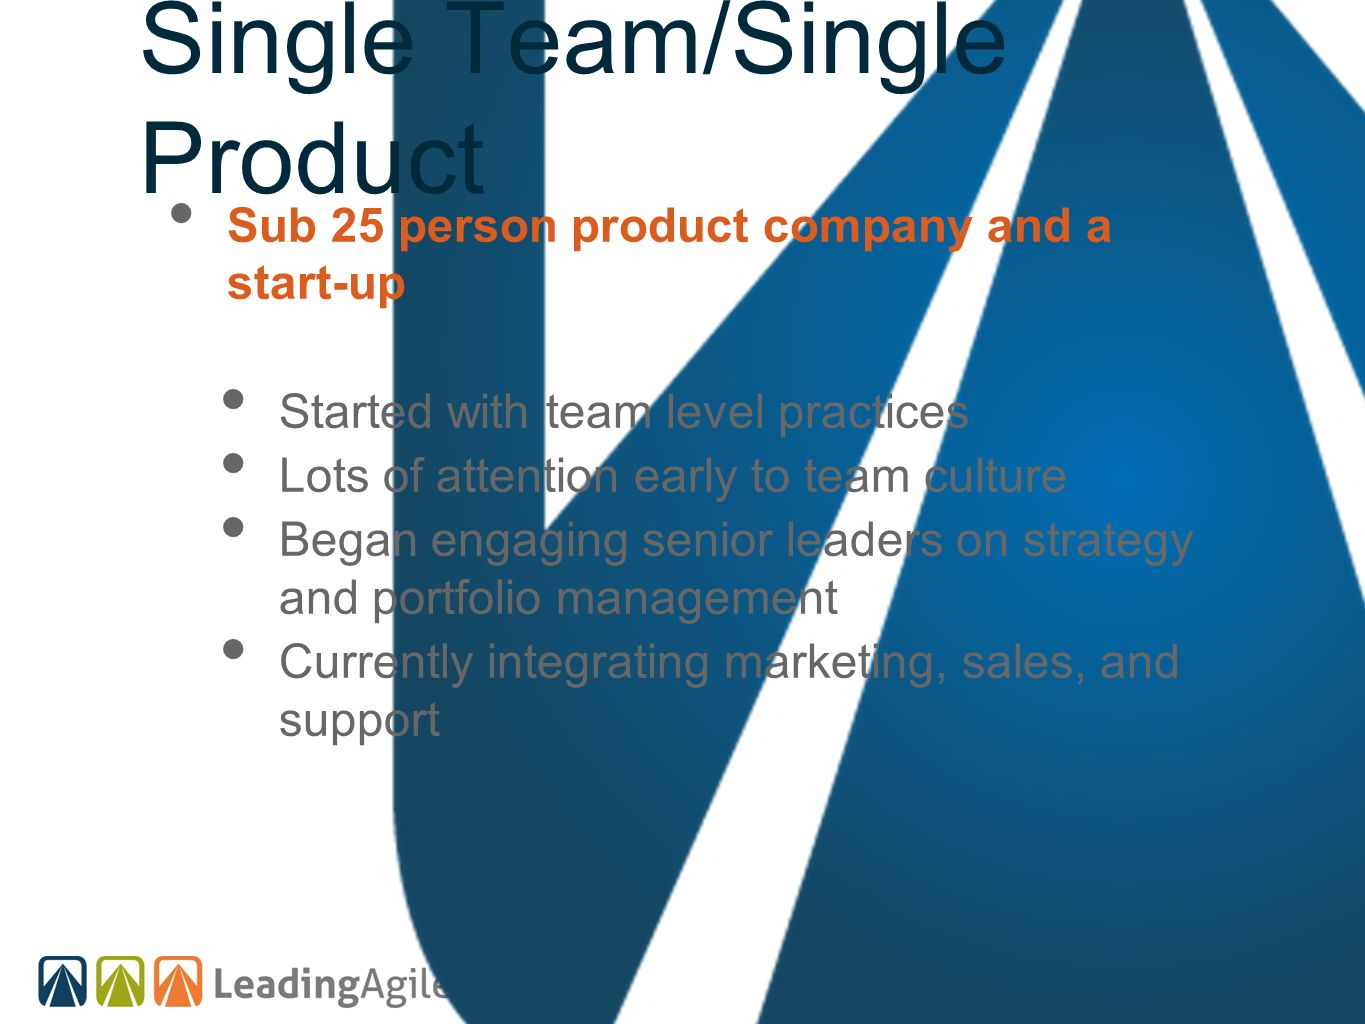 Single Team/Single Product